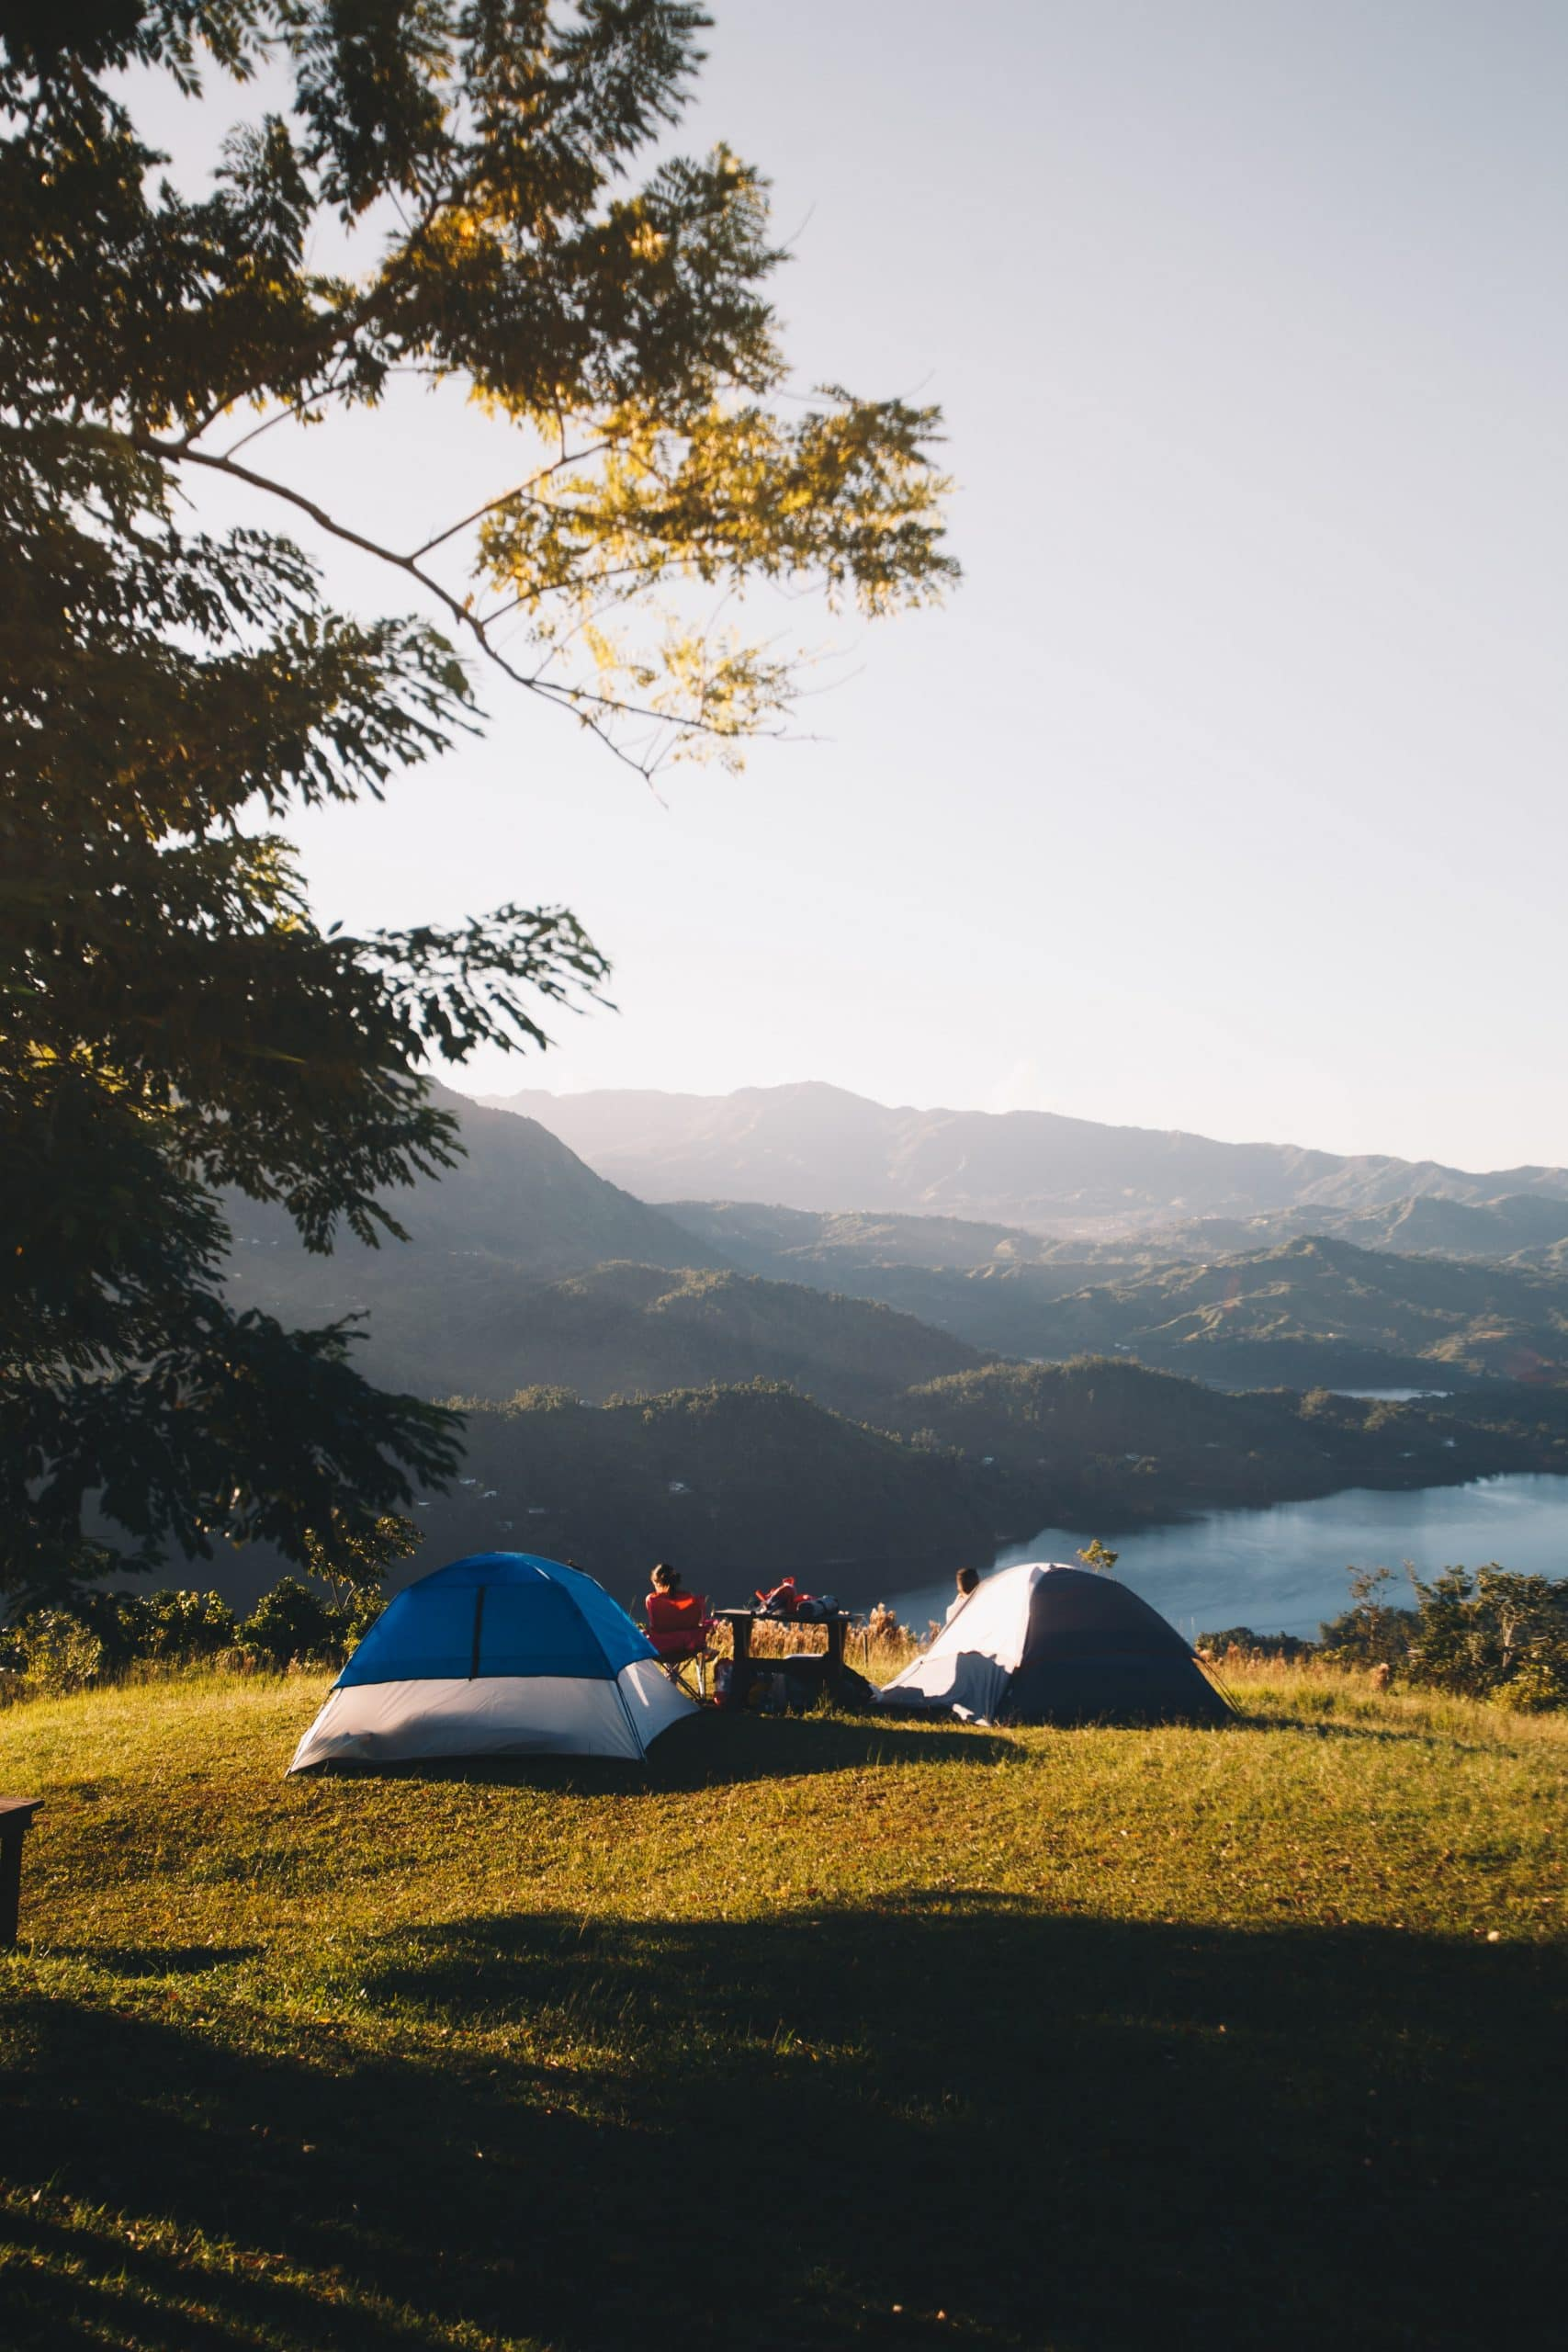 How to Make Smart Decisions When Planning a Camping Trip